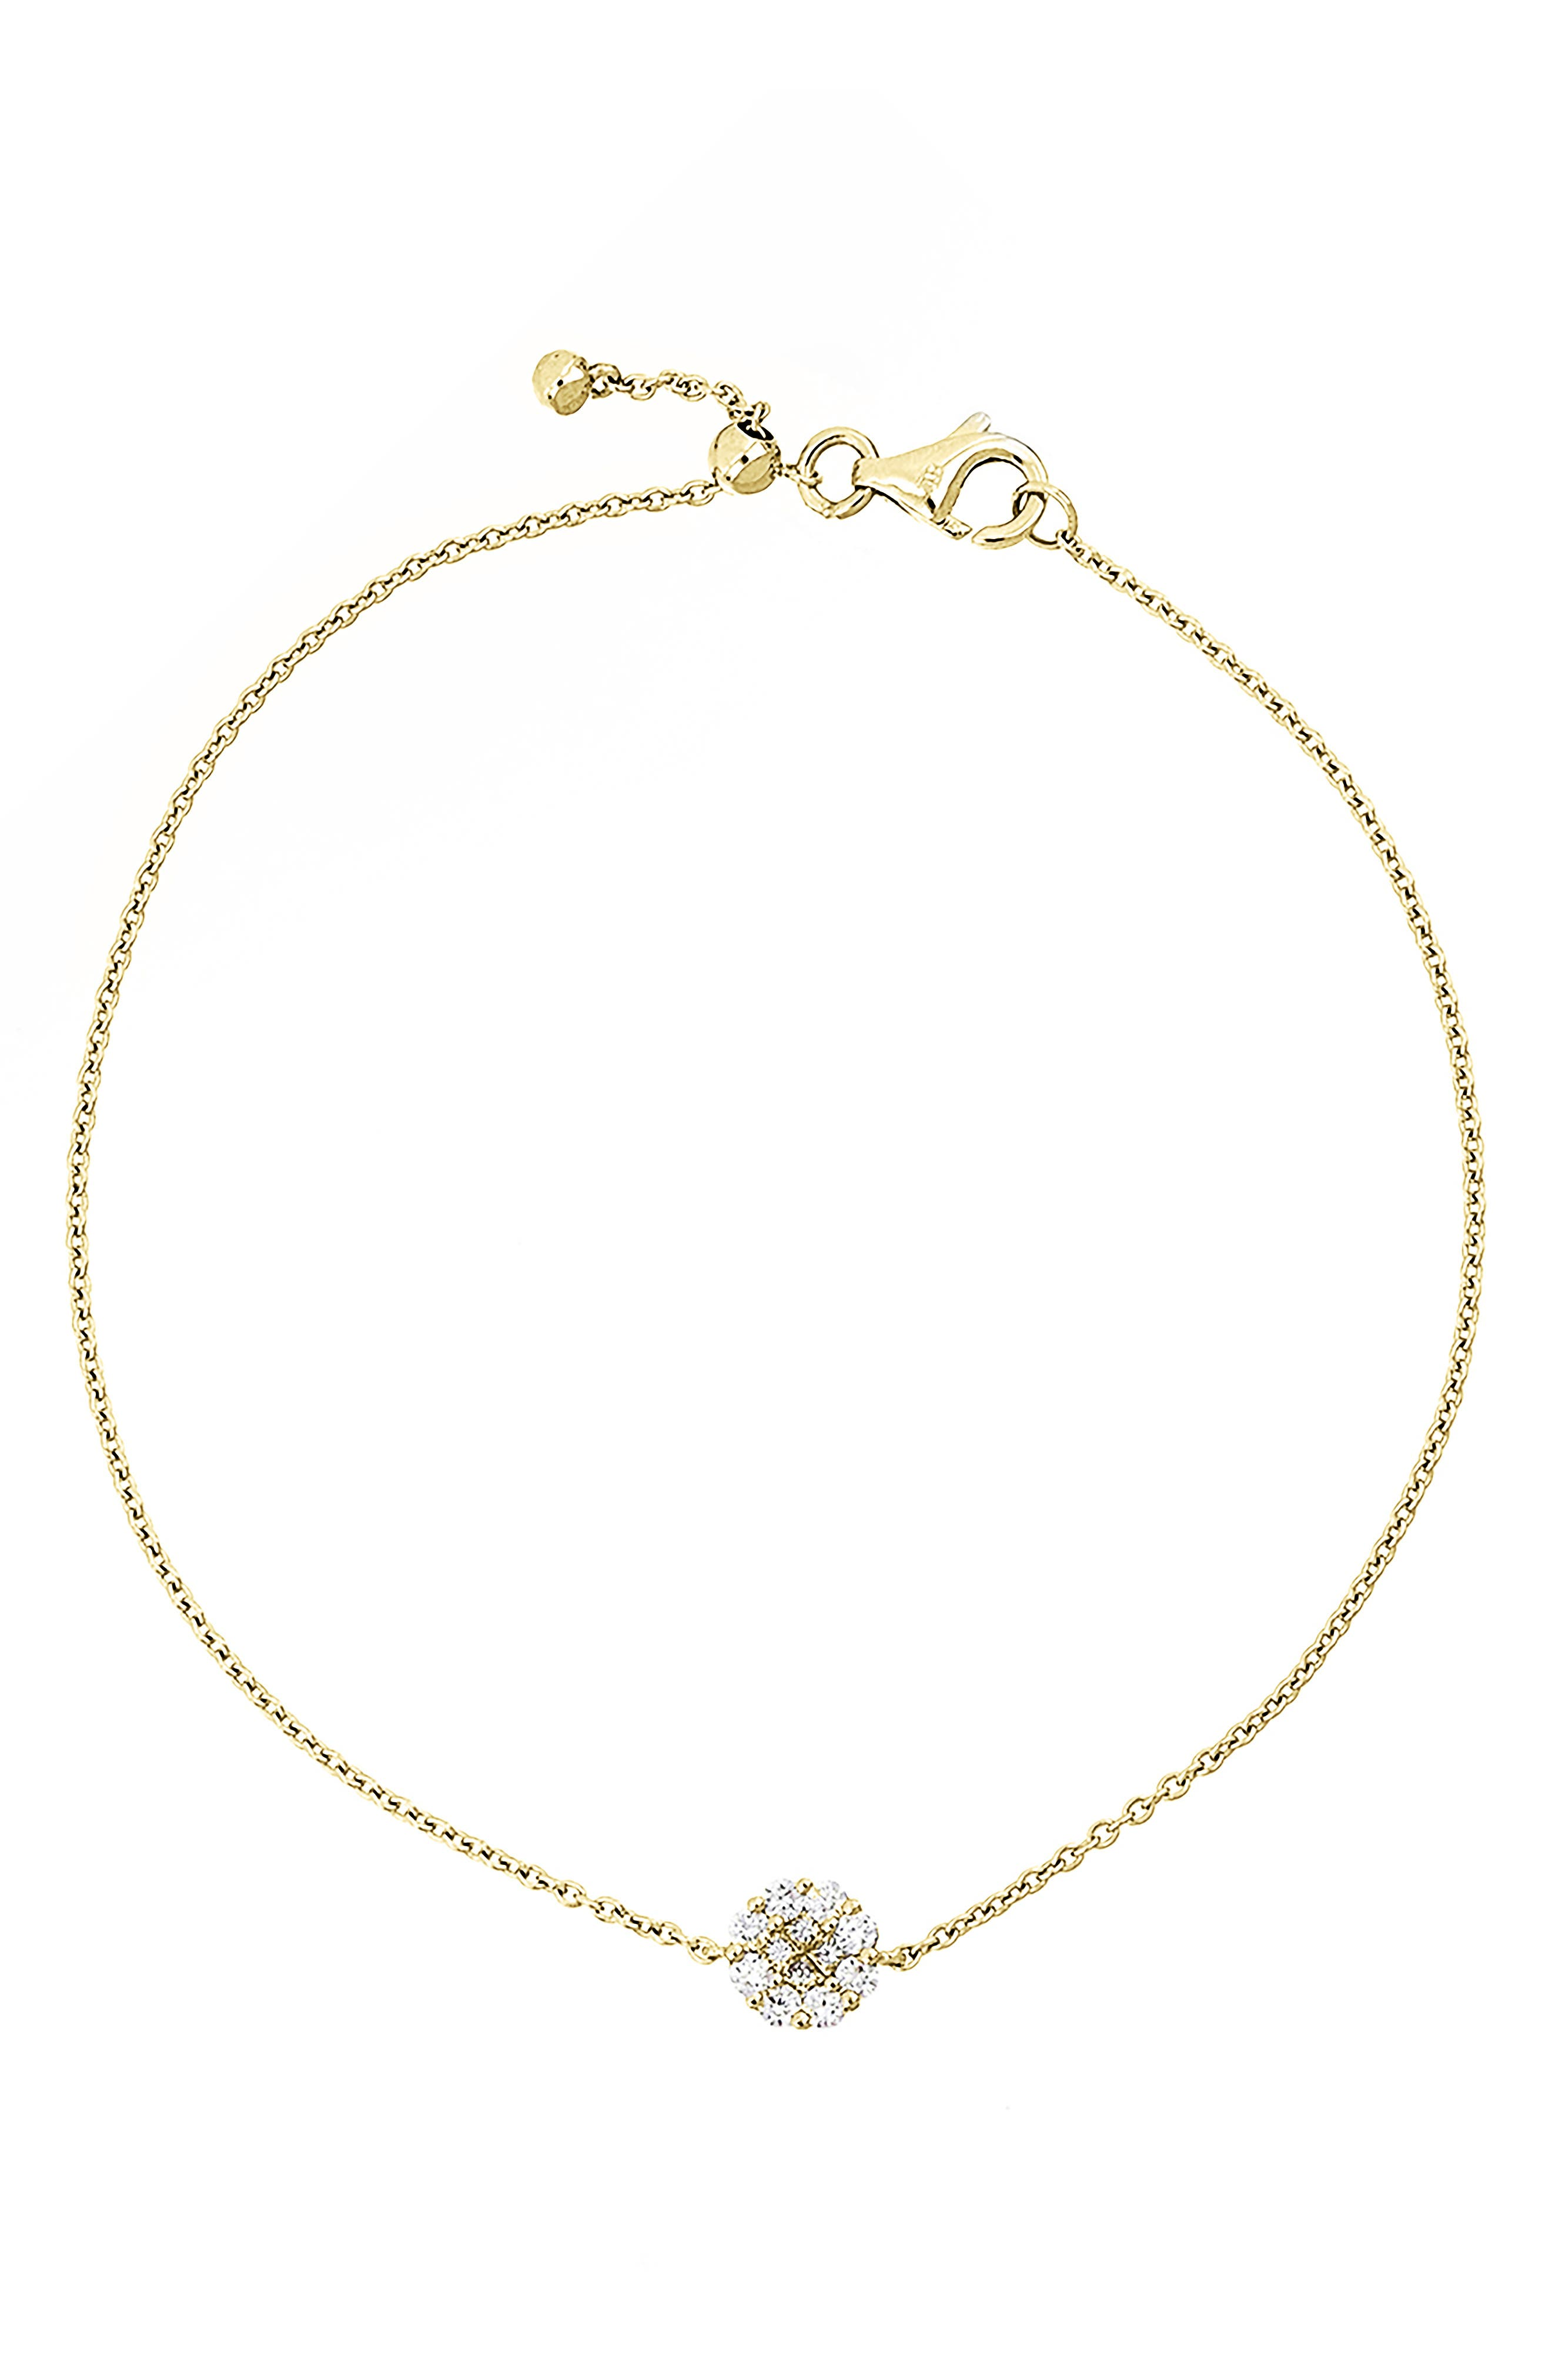 A delicate, wear-with-everything bracelet features an elegant circle pendant ablaze with 12 sparkling diamonds that seamlessly form the look of a larger gem. Style Name: Bony Levy Mika Pave Diamond Circle Pendant Bracelet (Nordstrom Exclusive). Style Number: 6063859 1. Available in stores.